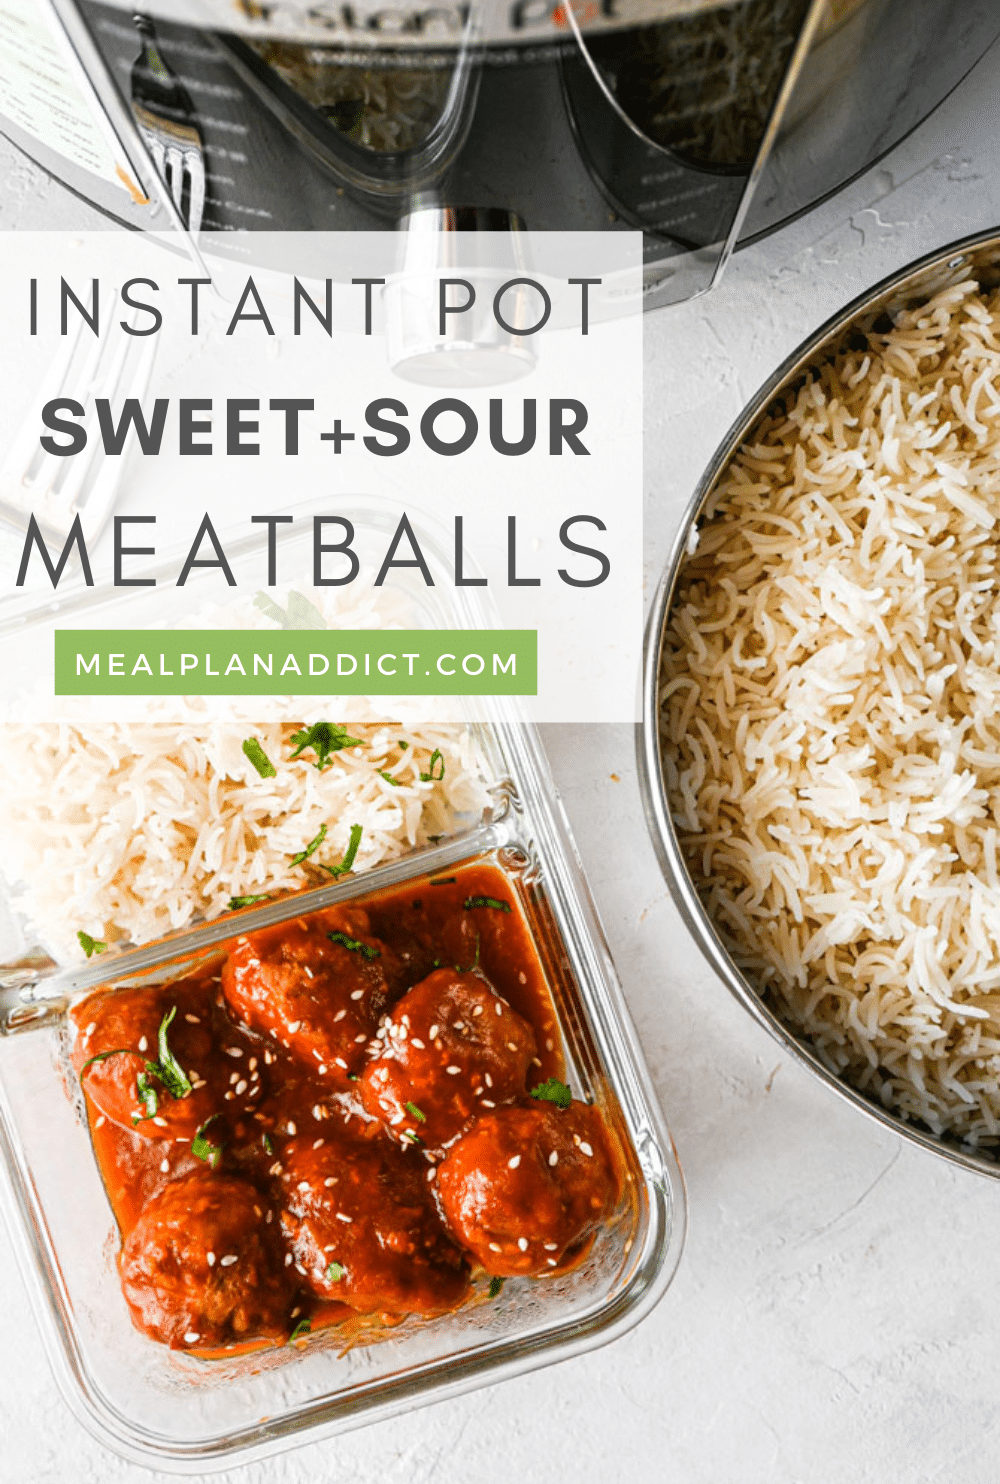 Meatballs with rice pin from Pinterest